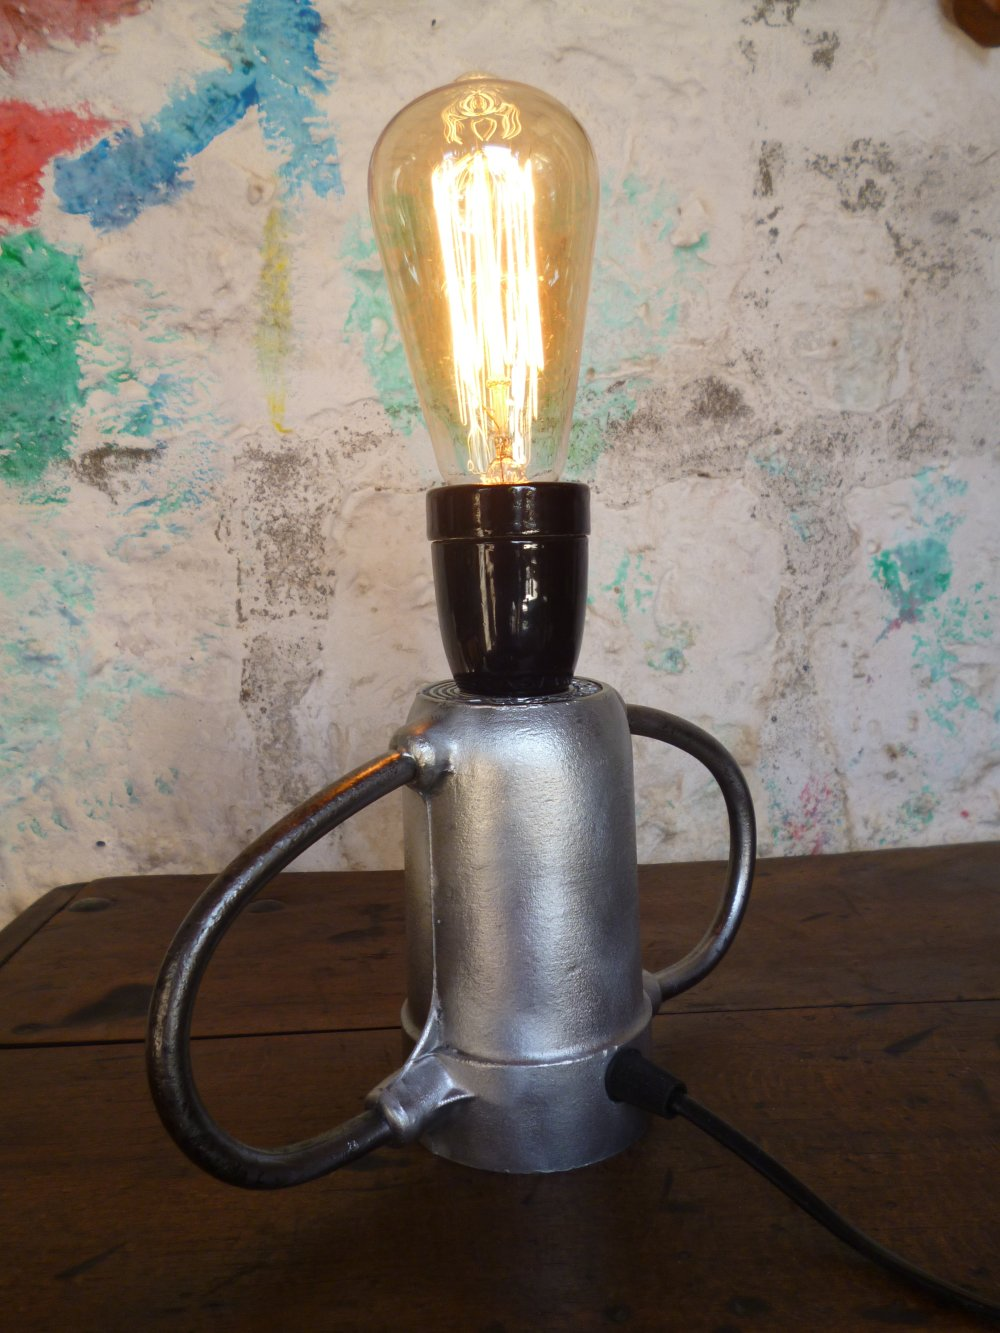 Lampe industrielle - metal - vintage - upcycling